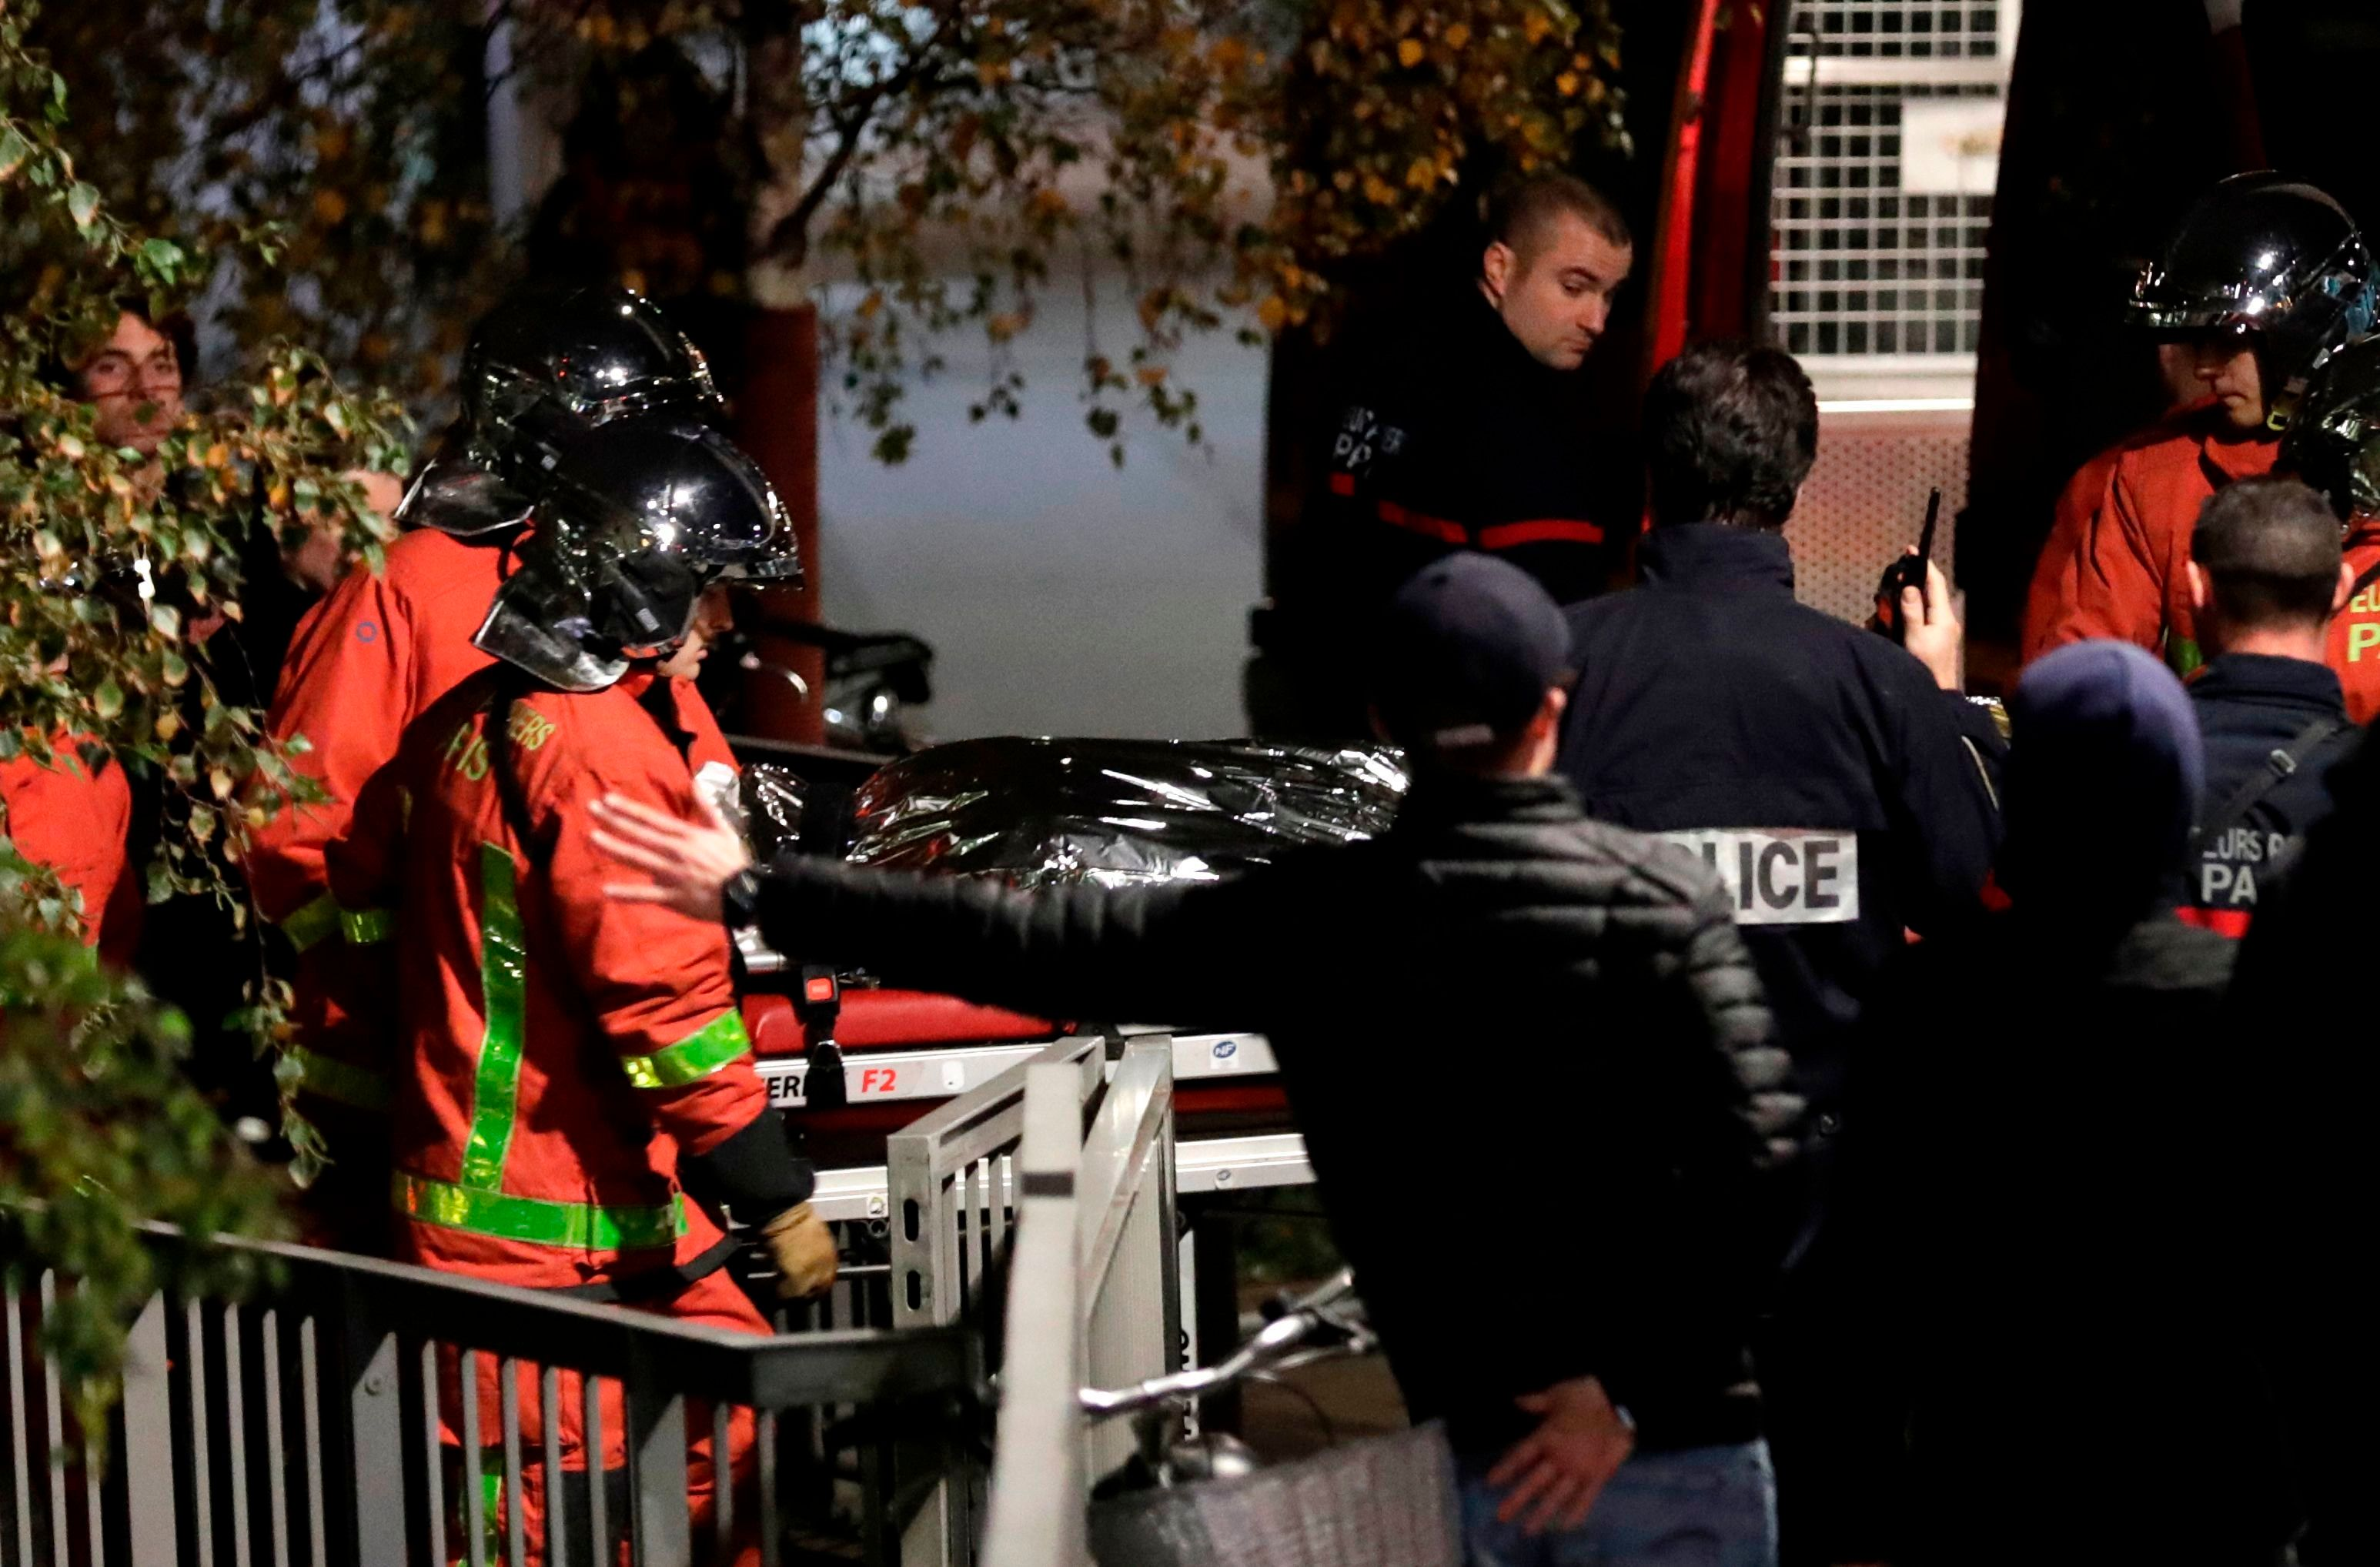 Police officials and rescue personnel transport the body of a tiger which had escaped from a circus into a vehicle in Paris on November 24, 2017, after the tiger was shot following an escape in the French capital. A tiger which escaped from a circus in Paris has been 'neutralised' by circus personnel and is now dead, police said. Firefighters had been called around 1700 GMT by people who saw the animal in the 15th Arrondissement of the French capital.  / AFP PHOTO / Thomas SAMSON        (Photo credit should read THOMAS SAMSON/AFP/Getty Images)